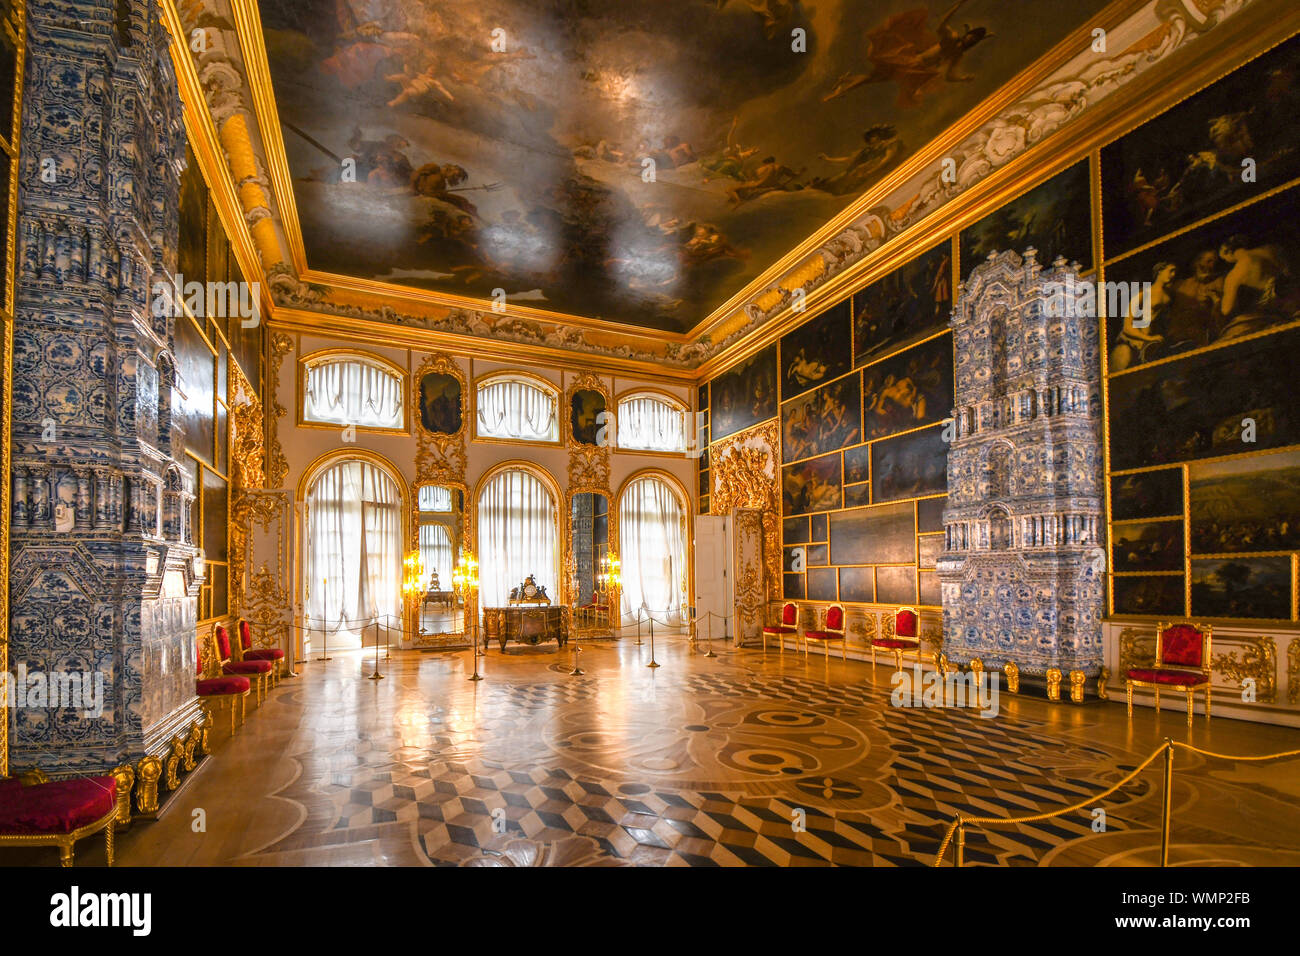 An ornate golden interior ballroom picture hall with inside the Rococo Catherine Palace near St. Petersburg, Russia. Stock Photo